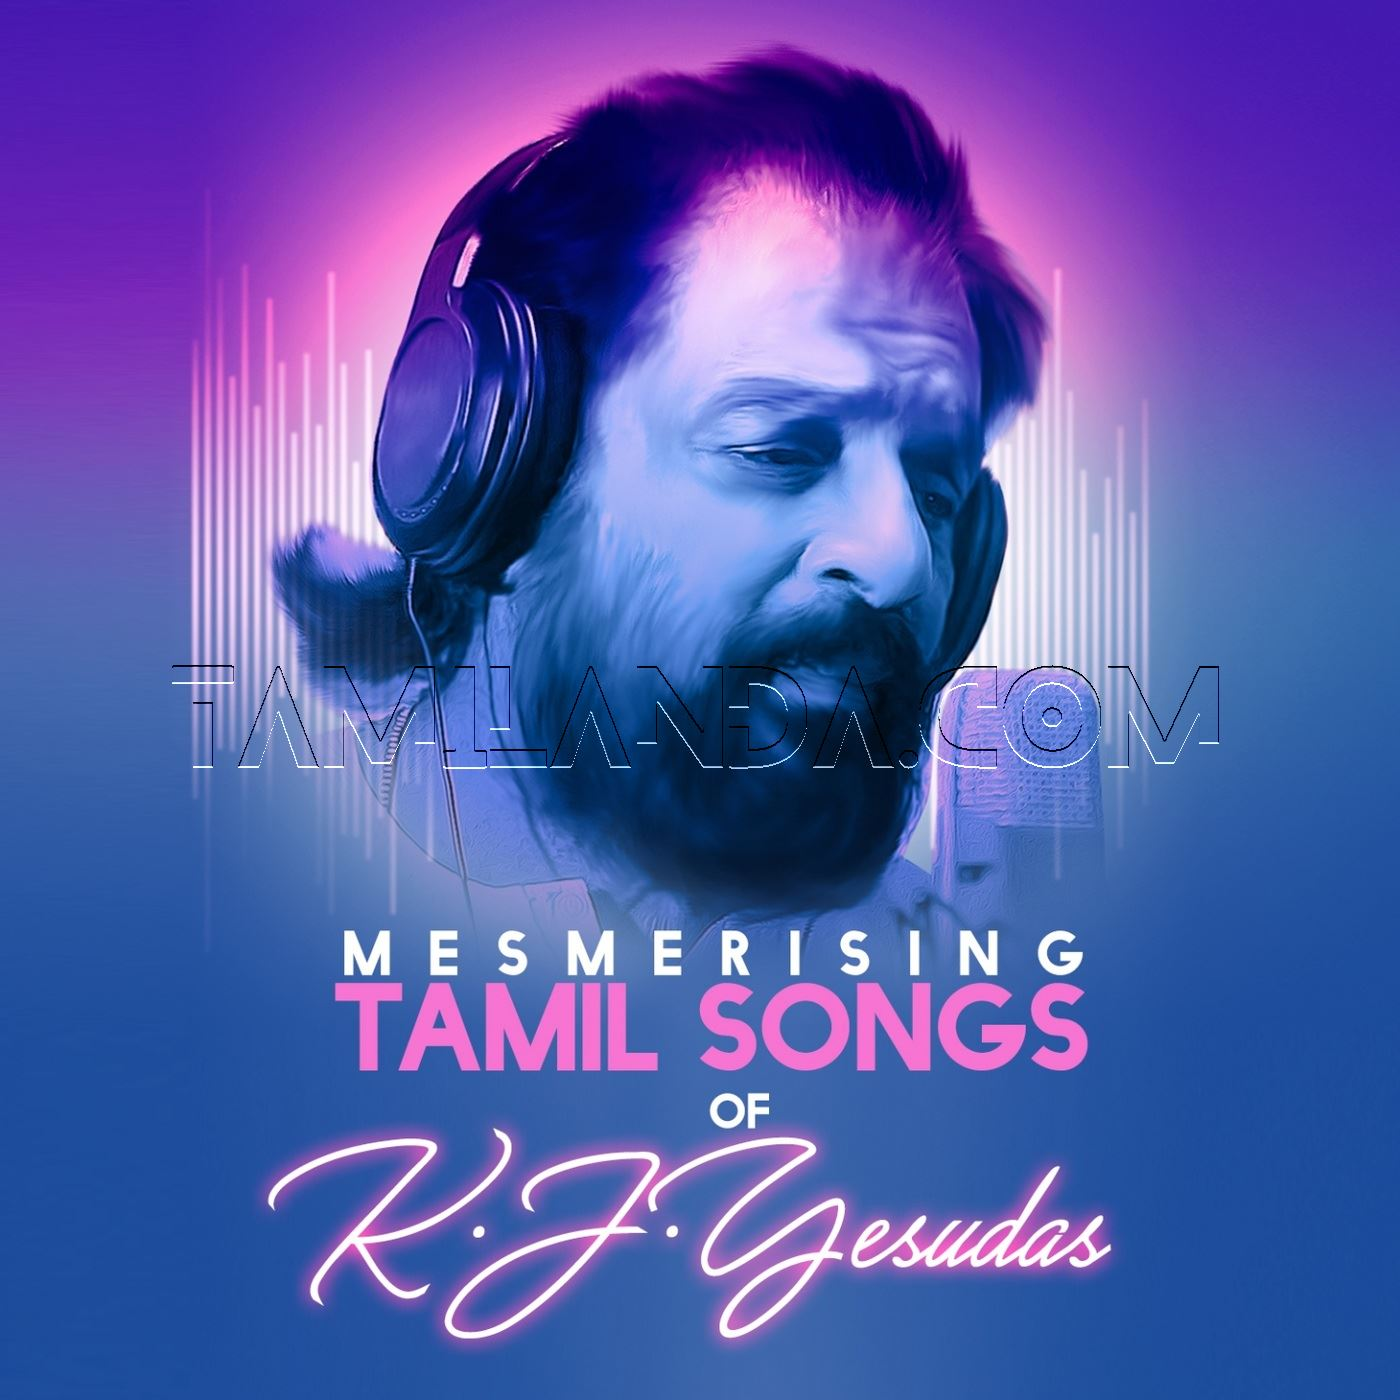 Mesmerising Tamil Songs Of K.J. Yesudas FLAC Songs (1991)